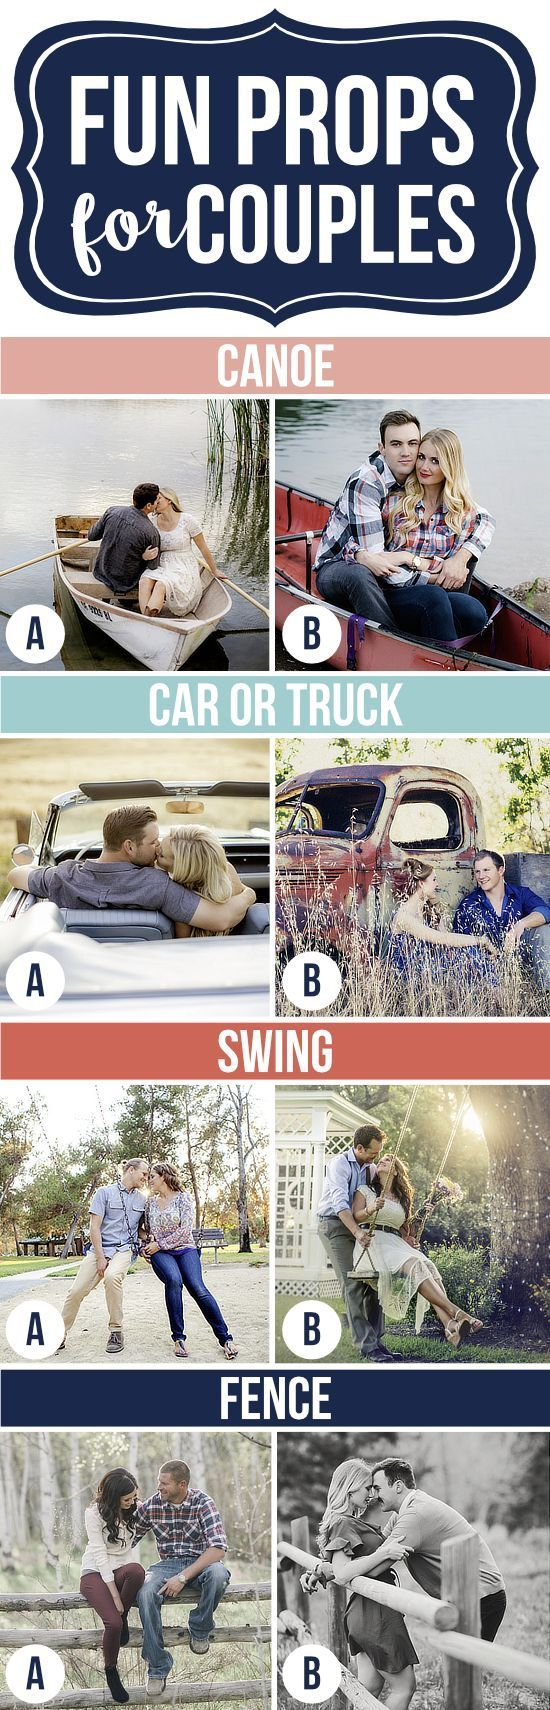 Photography Tips | Fun Props for Couples Photography | photoshoot pose ideas